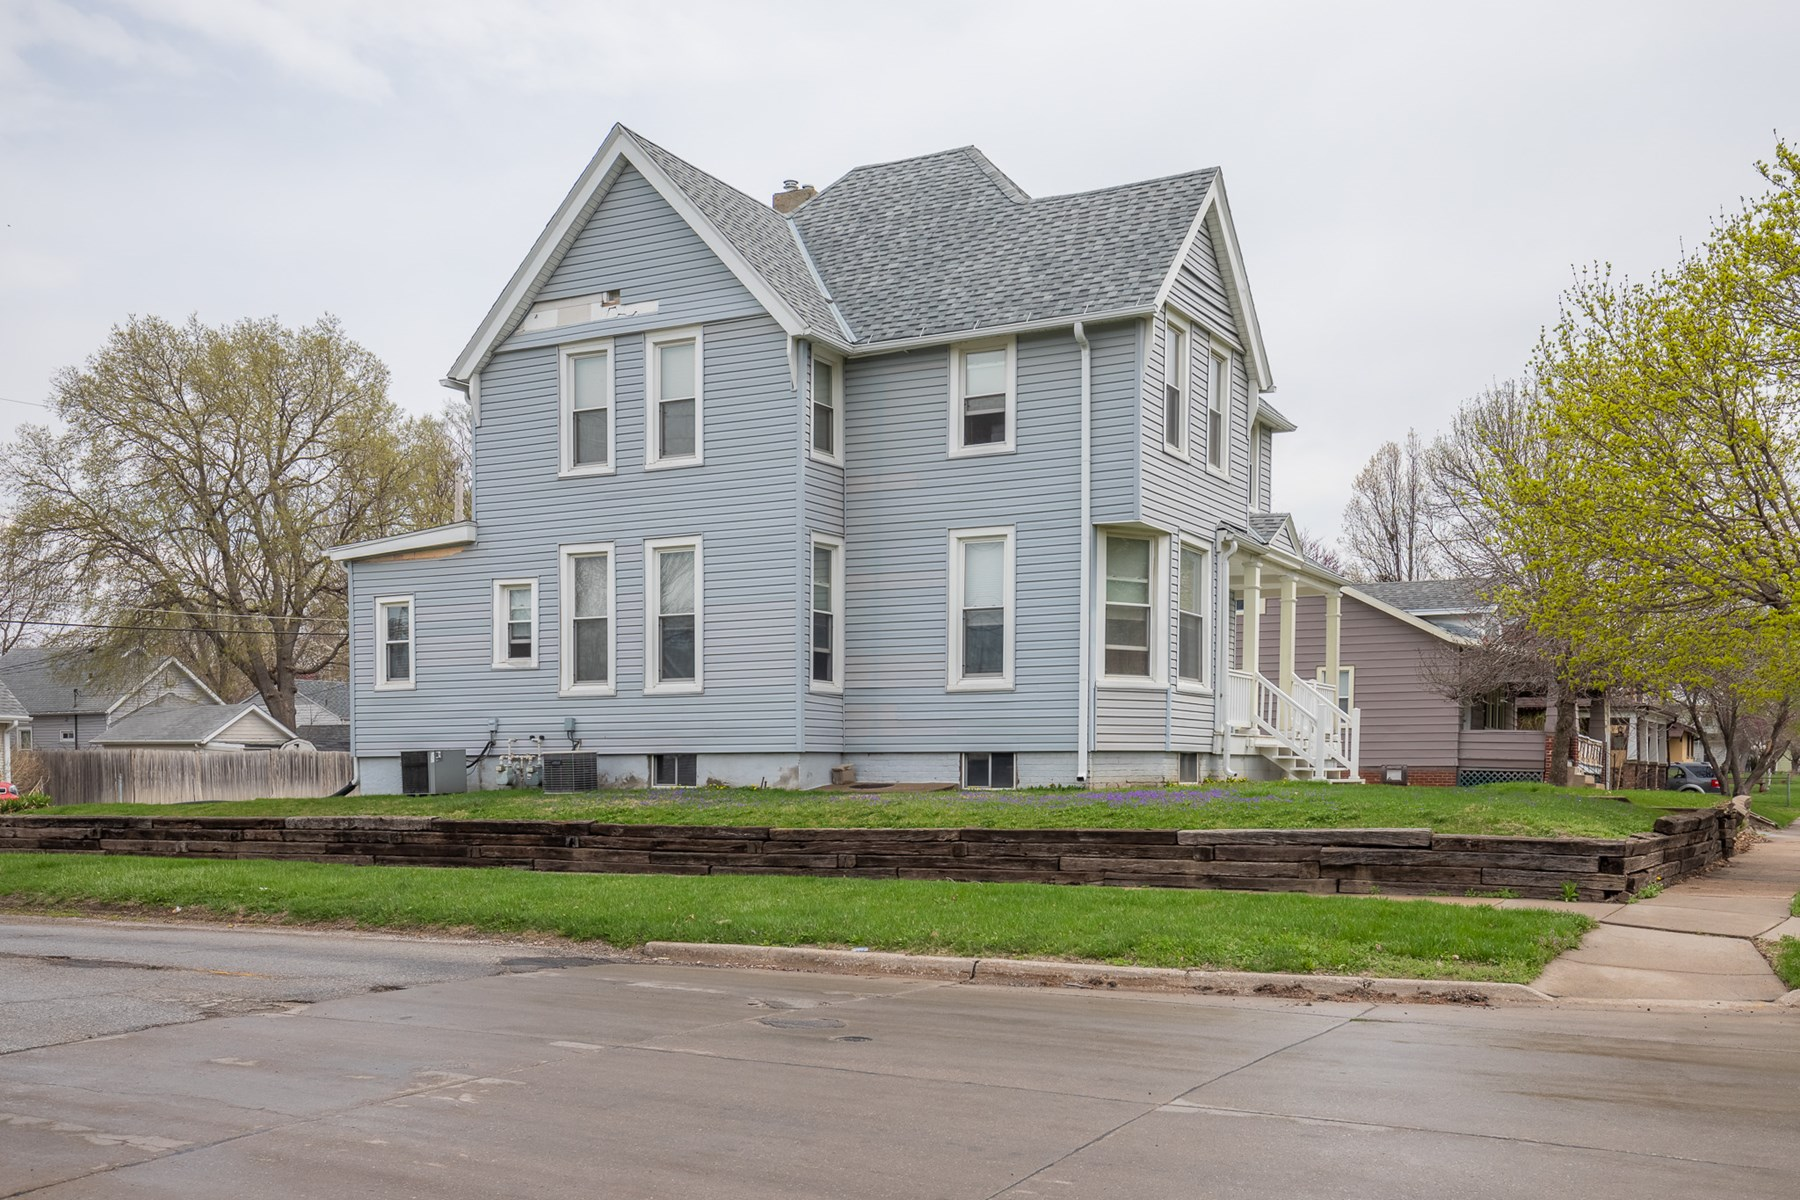 Duplex for Sale in Council Bluffs, Iowa